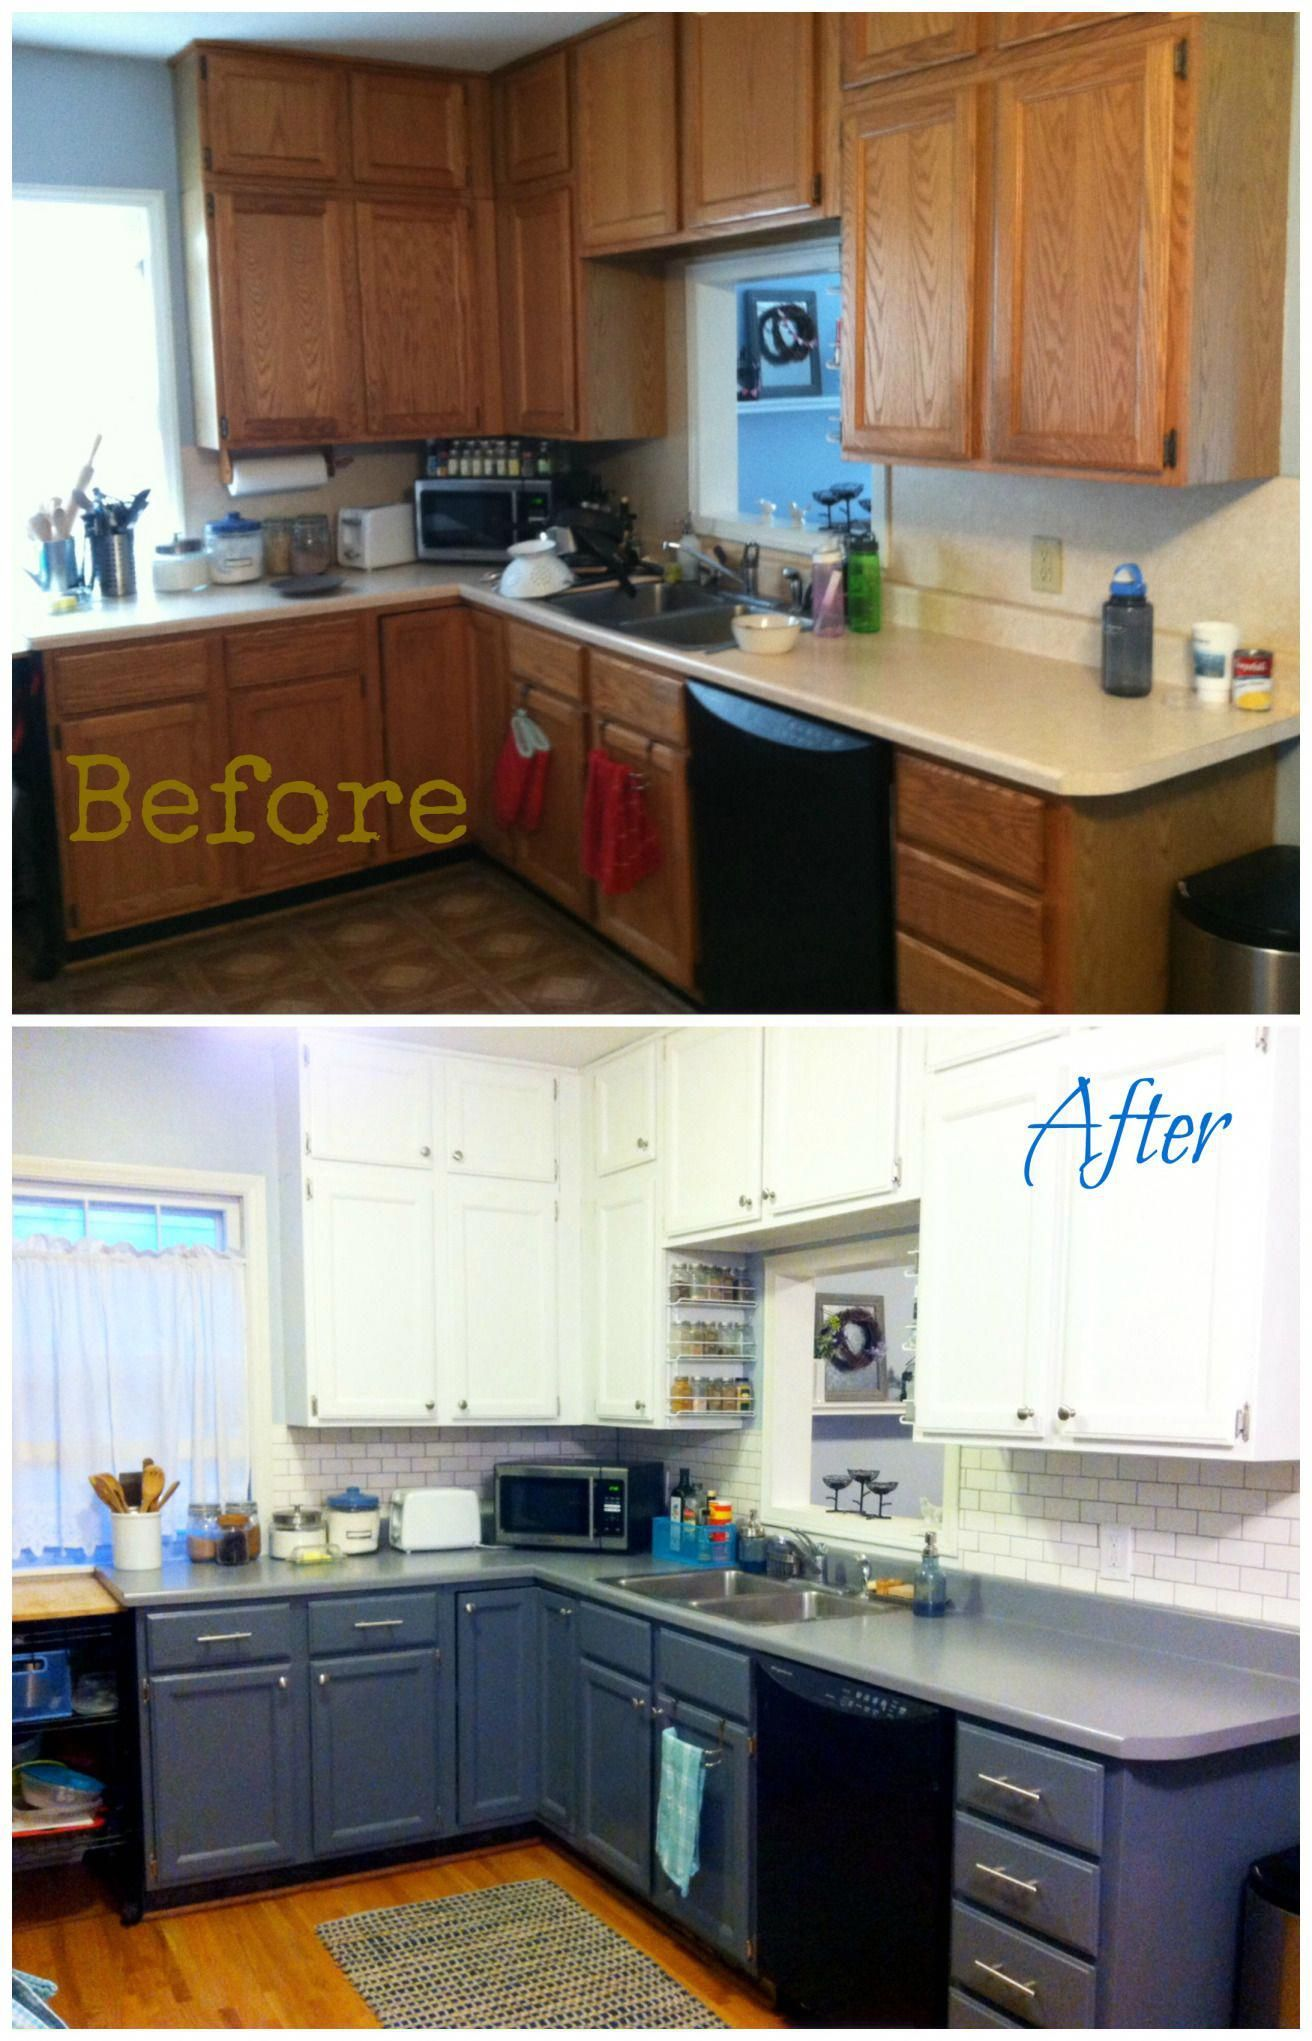 Kitchen Before And After With Very Good Advice Re Rustoleum